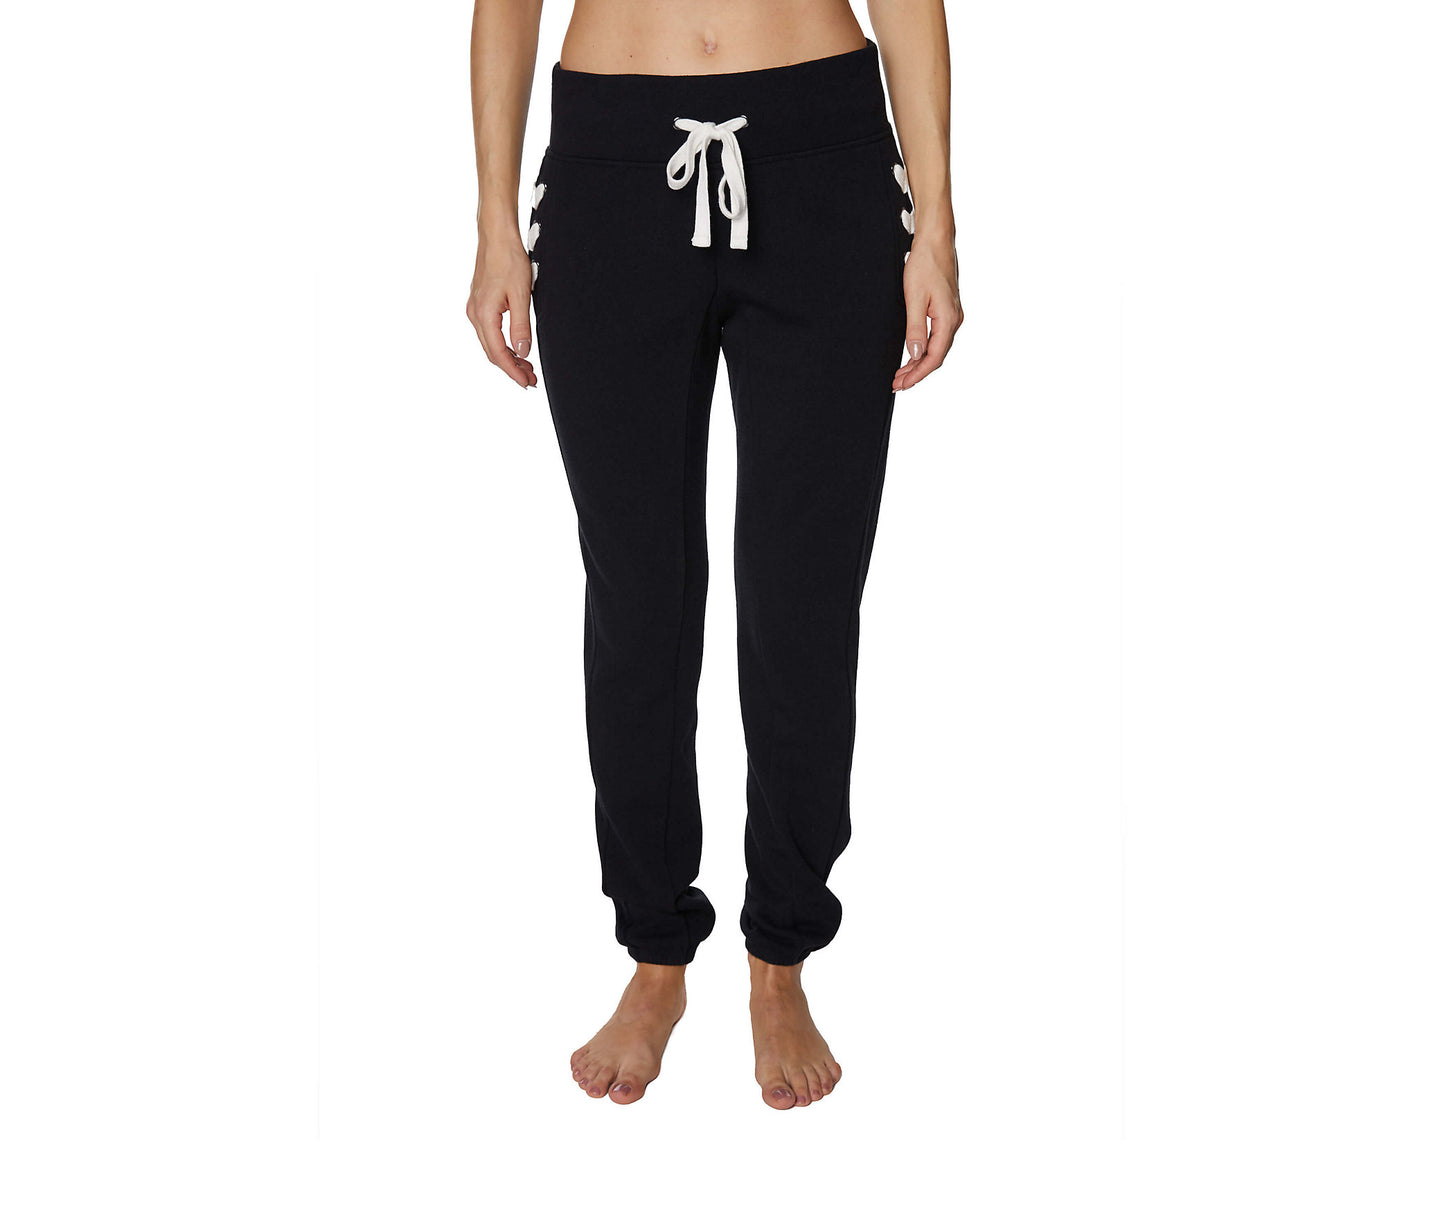 LACED UP JOGGER PANTS BLACK - APPAREL - Betsey Johnson